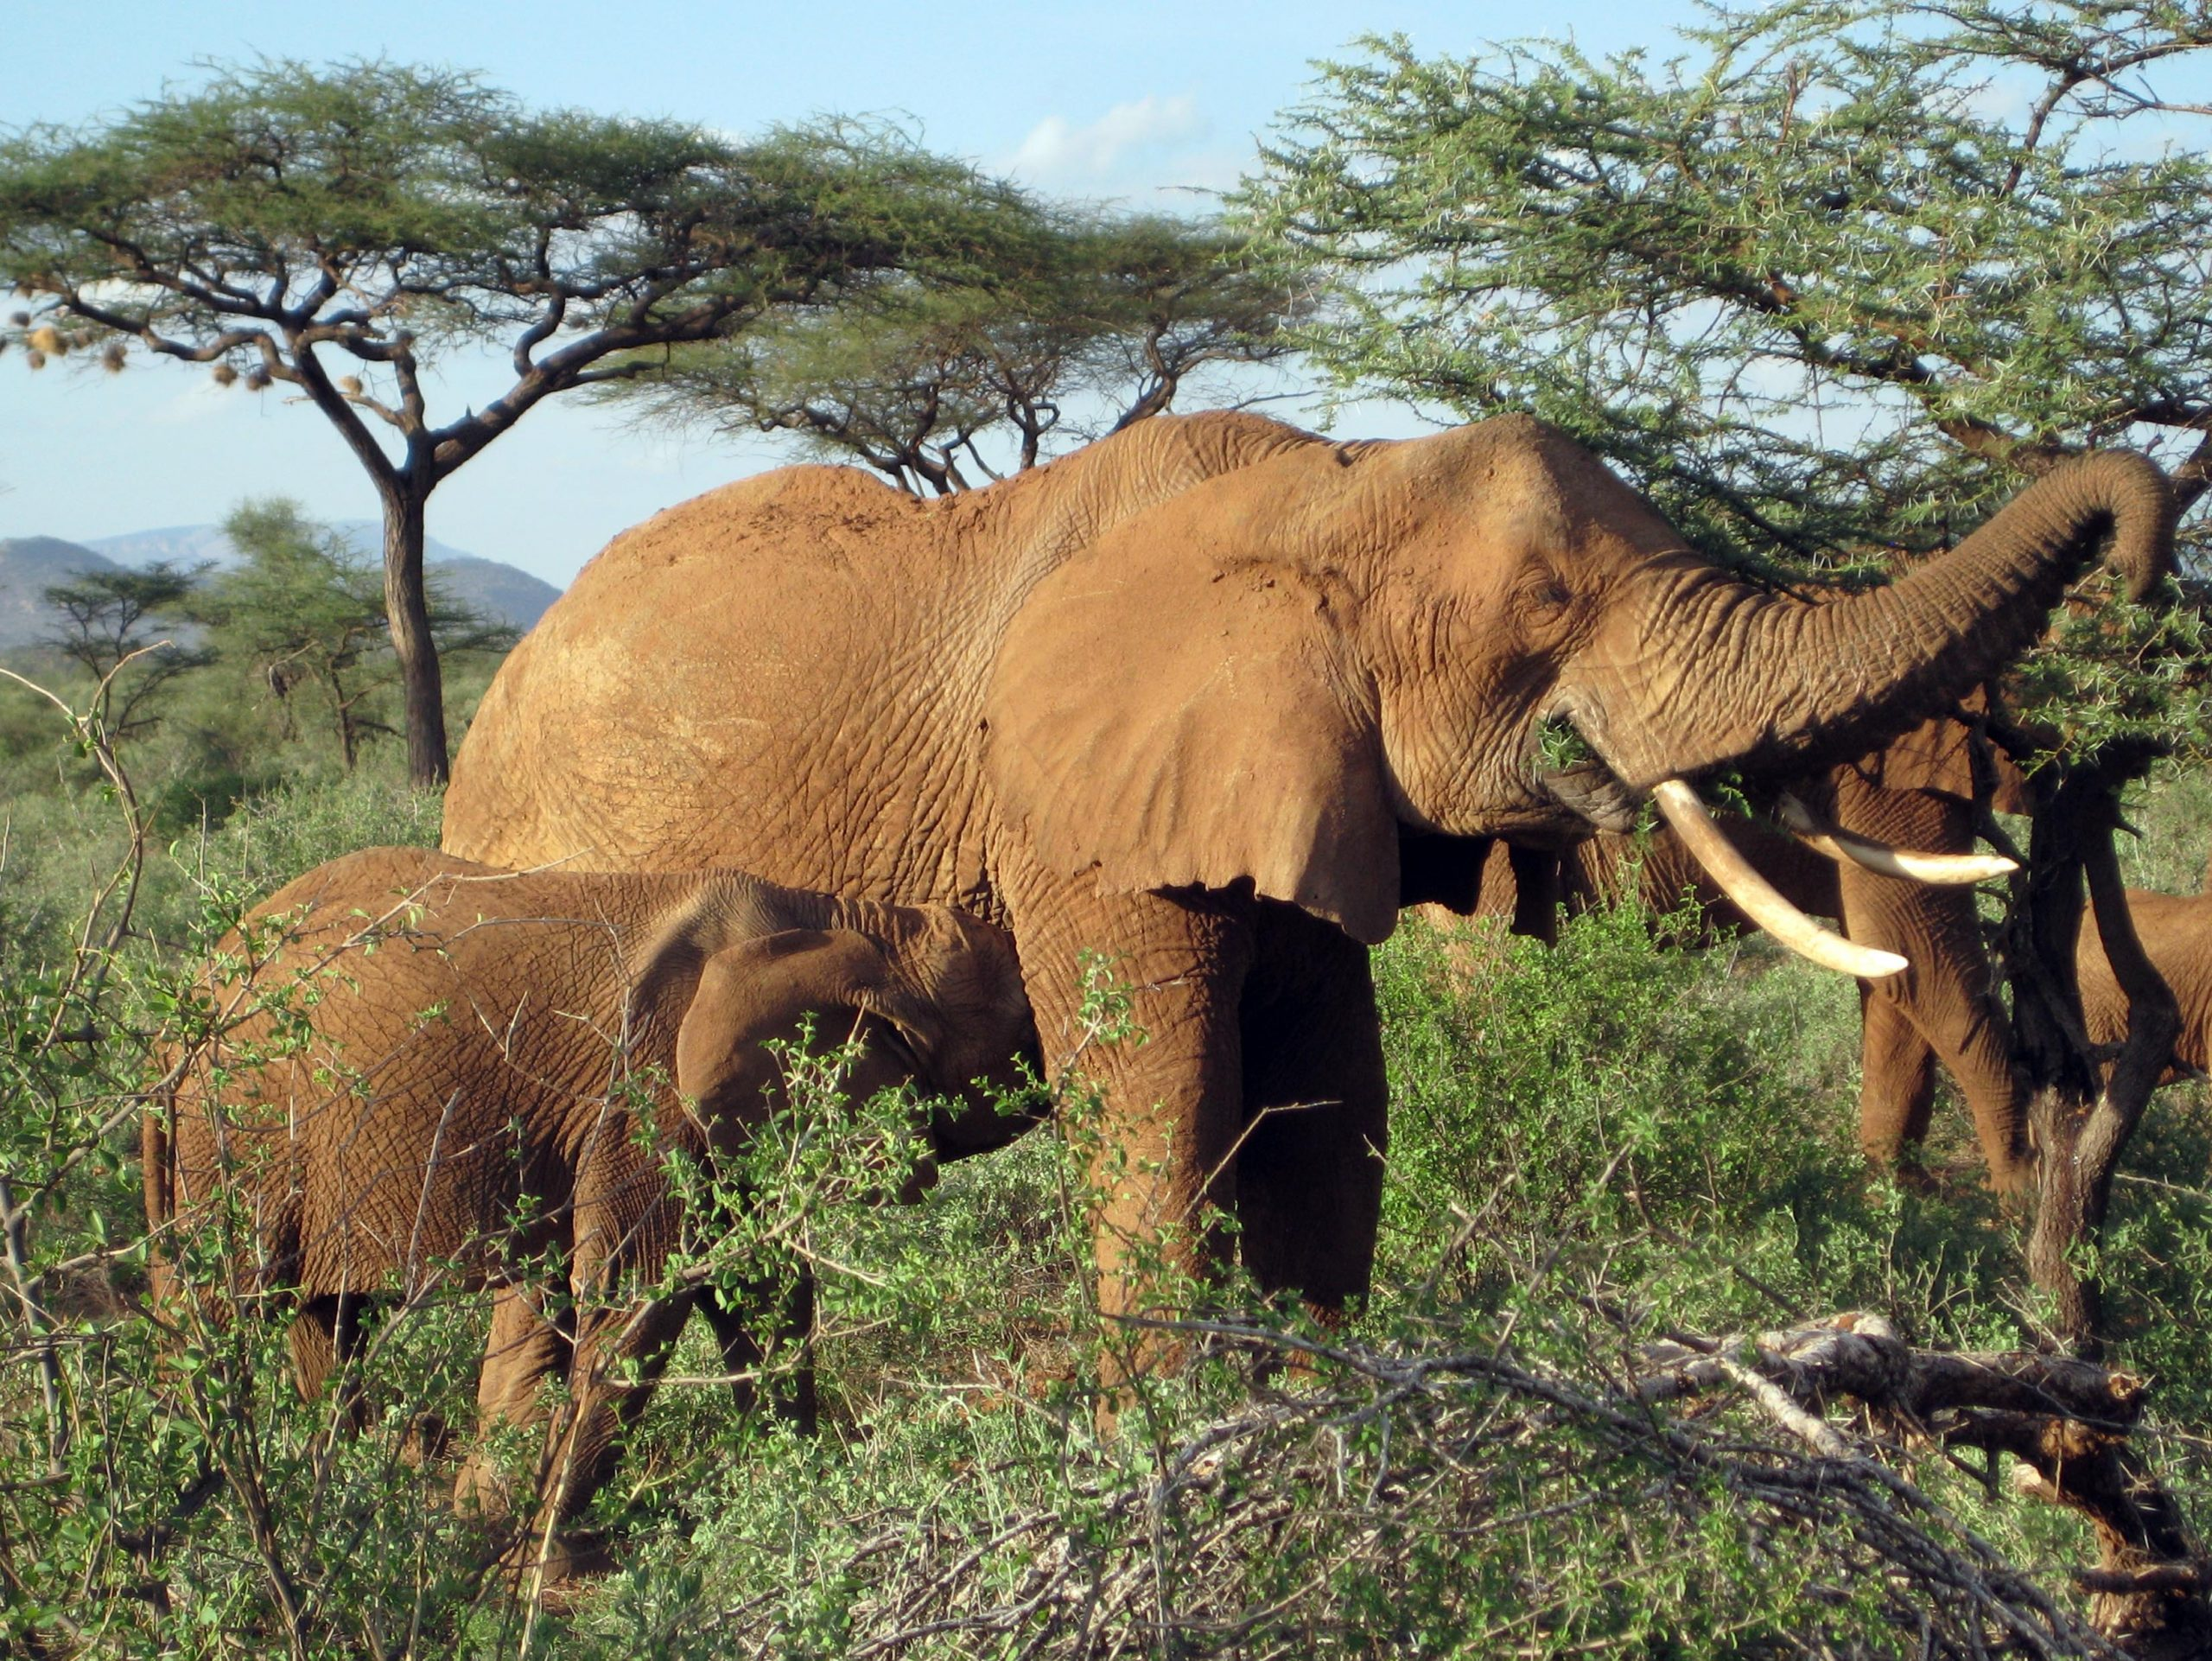 An African elephant browses on leaves of an acacia tree. Modern elephants eat mostly tree leaves and shrubs, but a new University of Utah study shows that they once ate a diet of mostly warm-season grasses, starting about 7.4 million years ago. The study used fossilized teeth to reconstruct the dietary history of east African plant-eaters from 10 million to 3 million years ago, showing that different animals switched at different times from a salad-bar diet of trees and shrubs to a diet of warm season grasses.